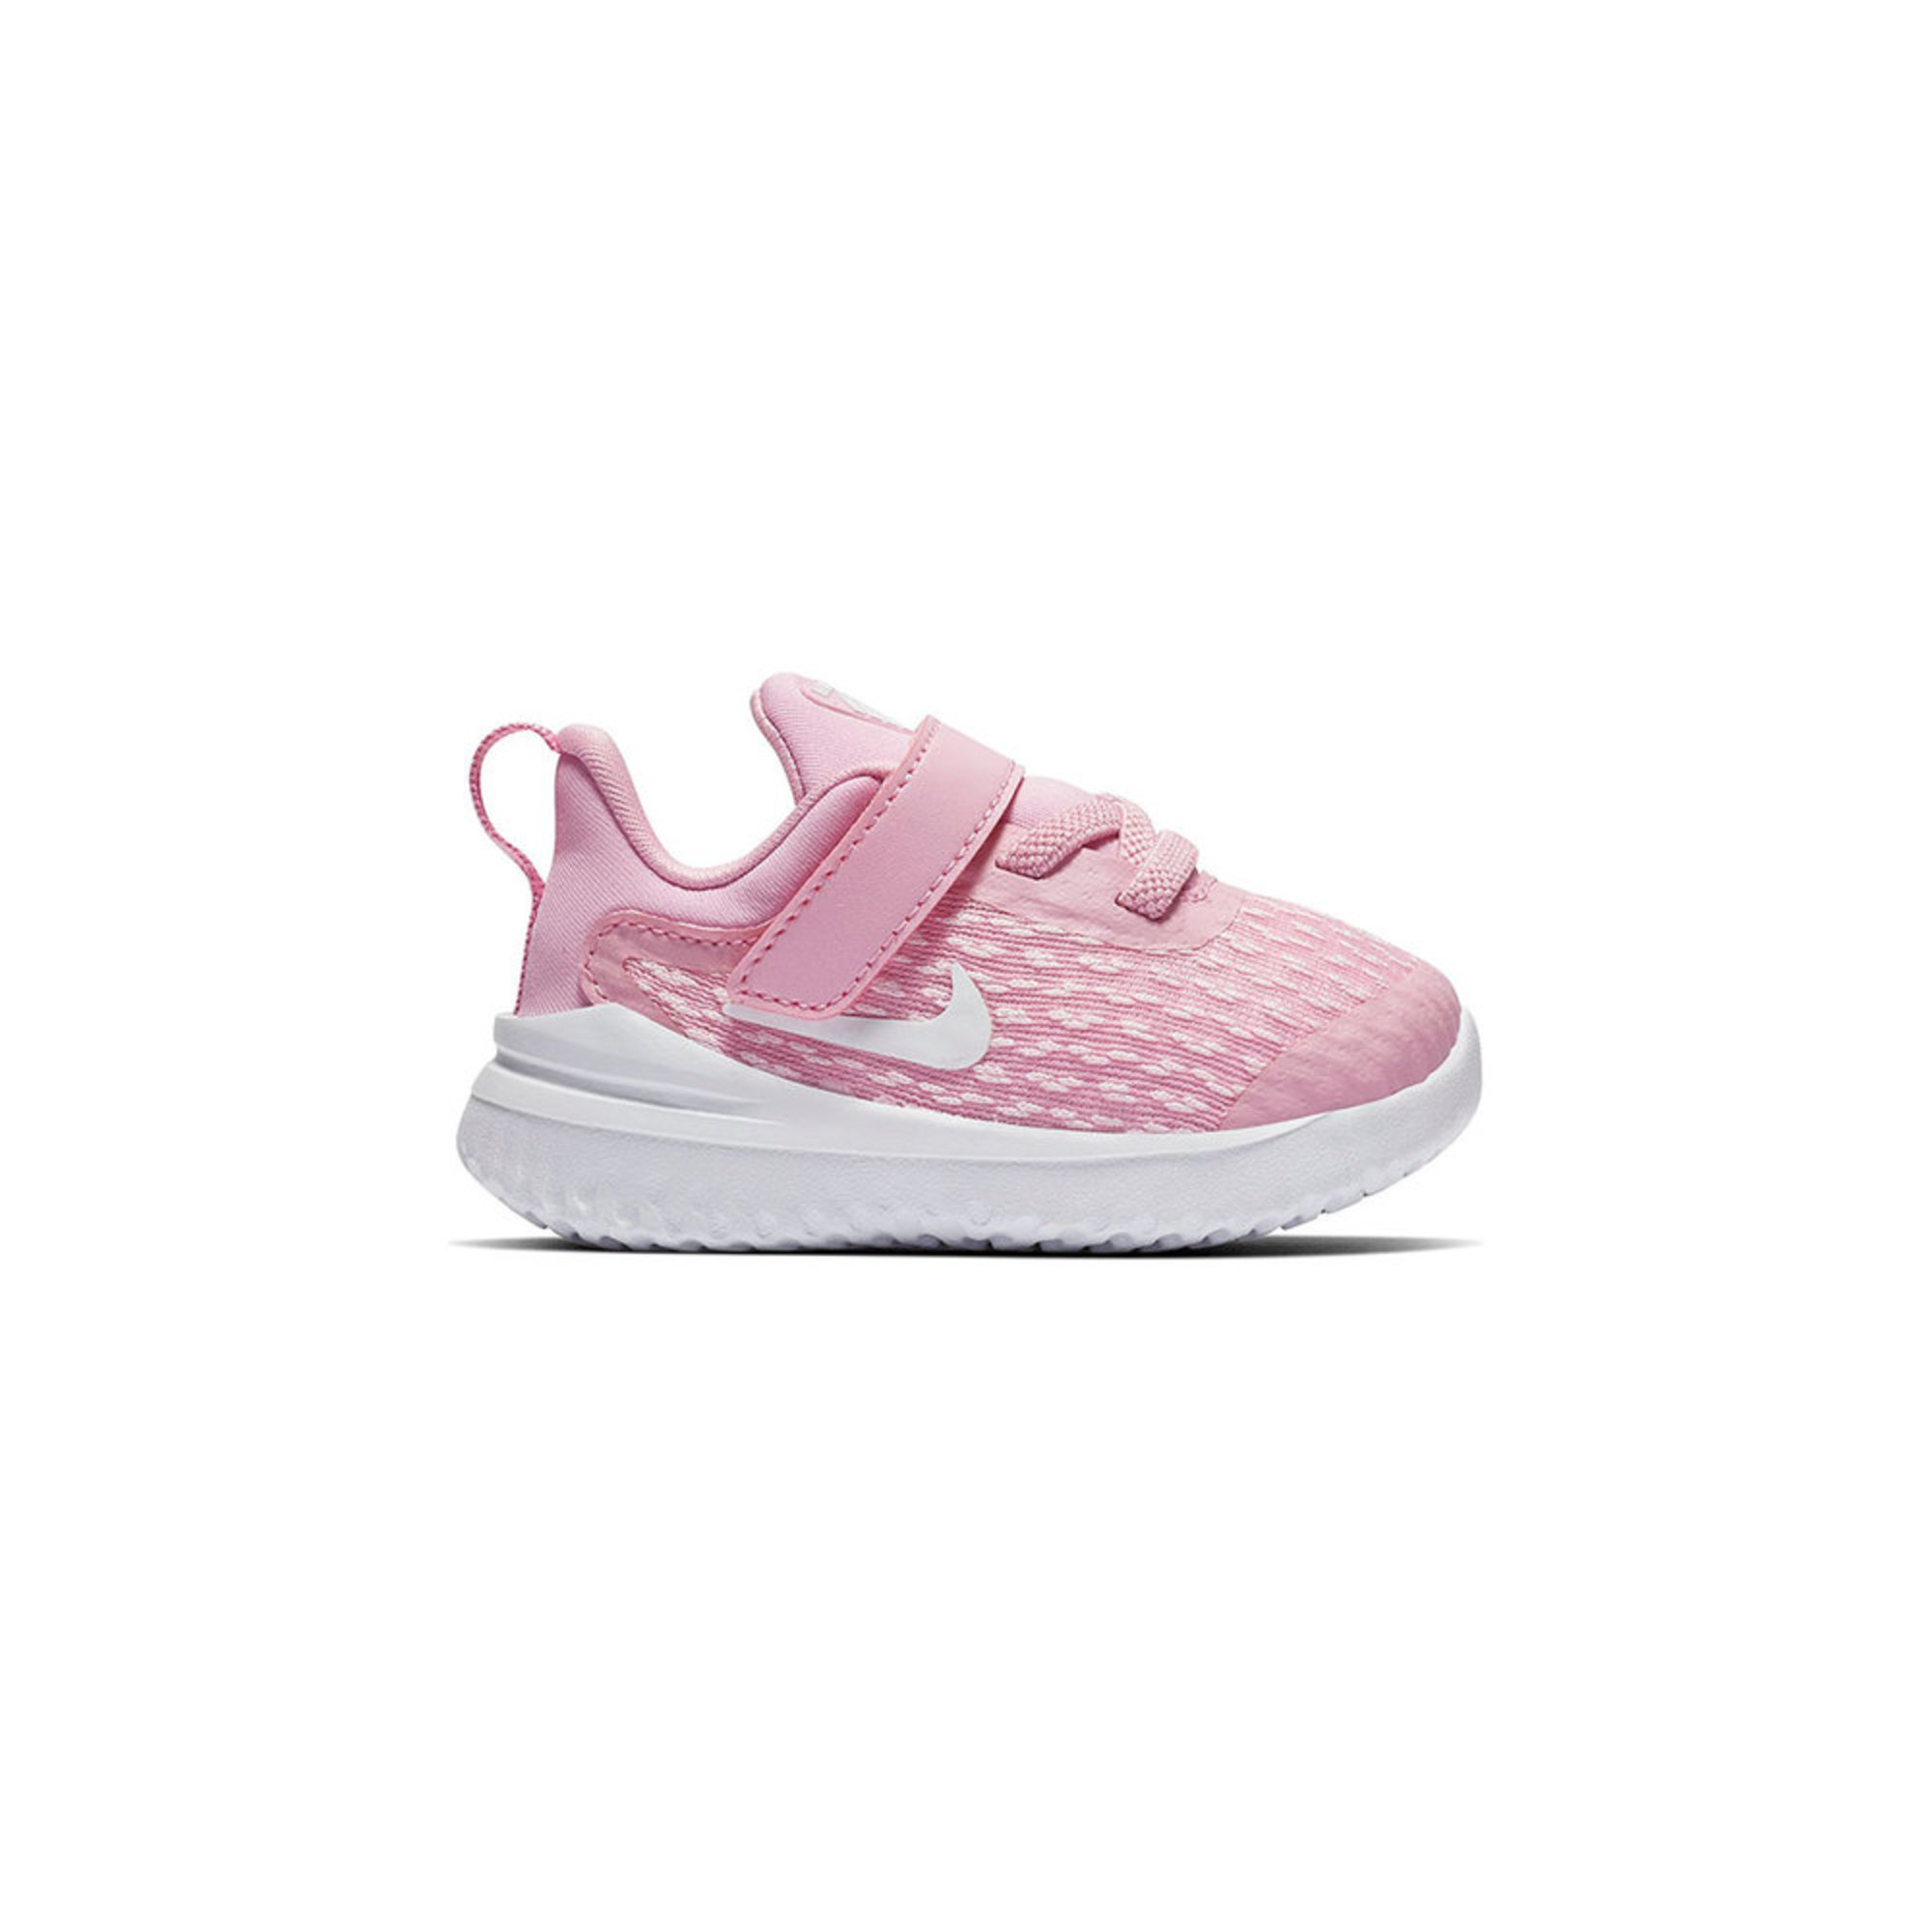 0ff0e1bc Nike Infant/toddler Girl's Renew Rival Running Shoe | Toddler Shoes ...